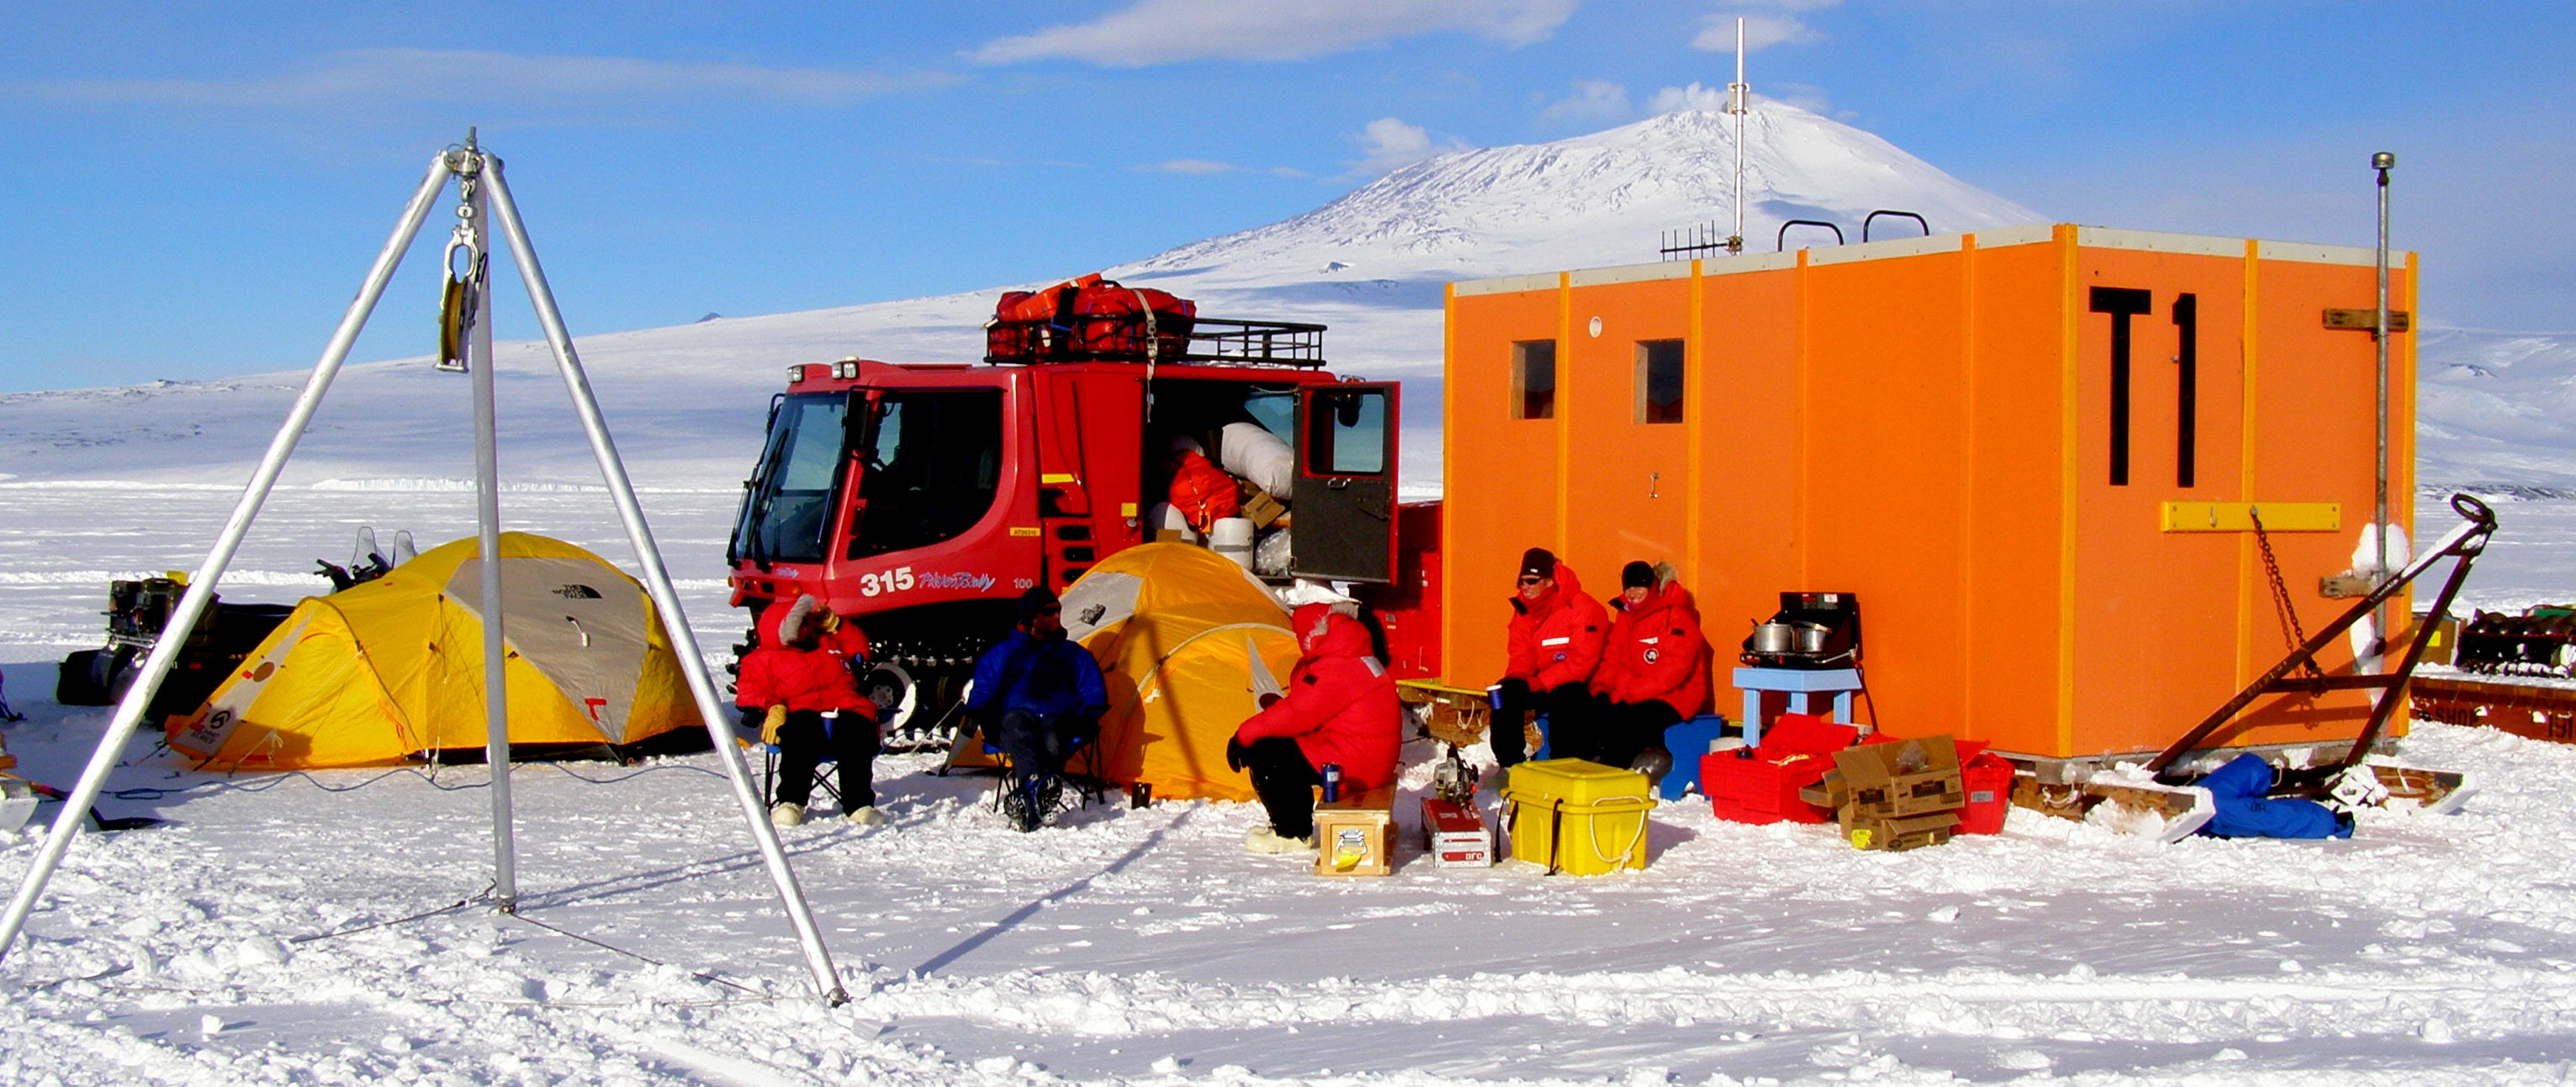 Enjoying some hot beverages out of the wind at Station II ice camp